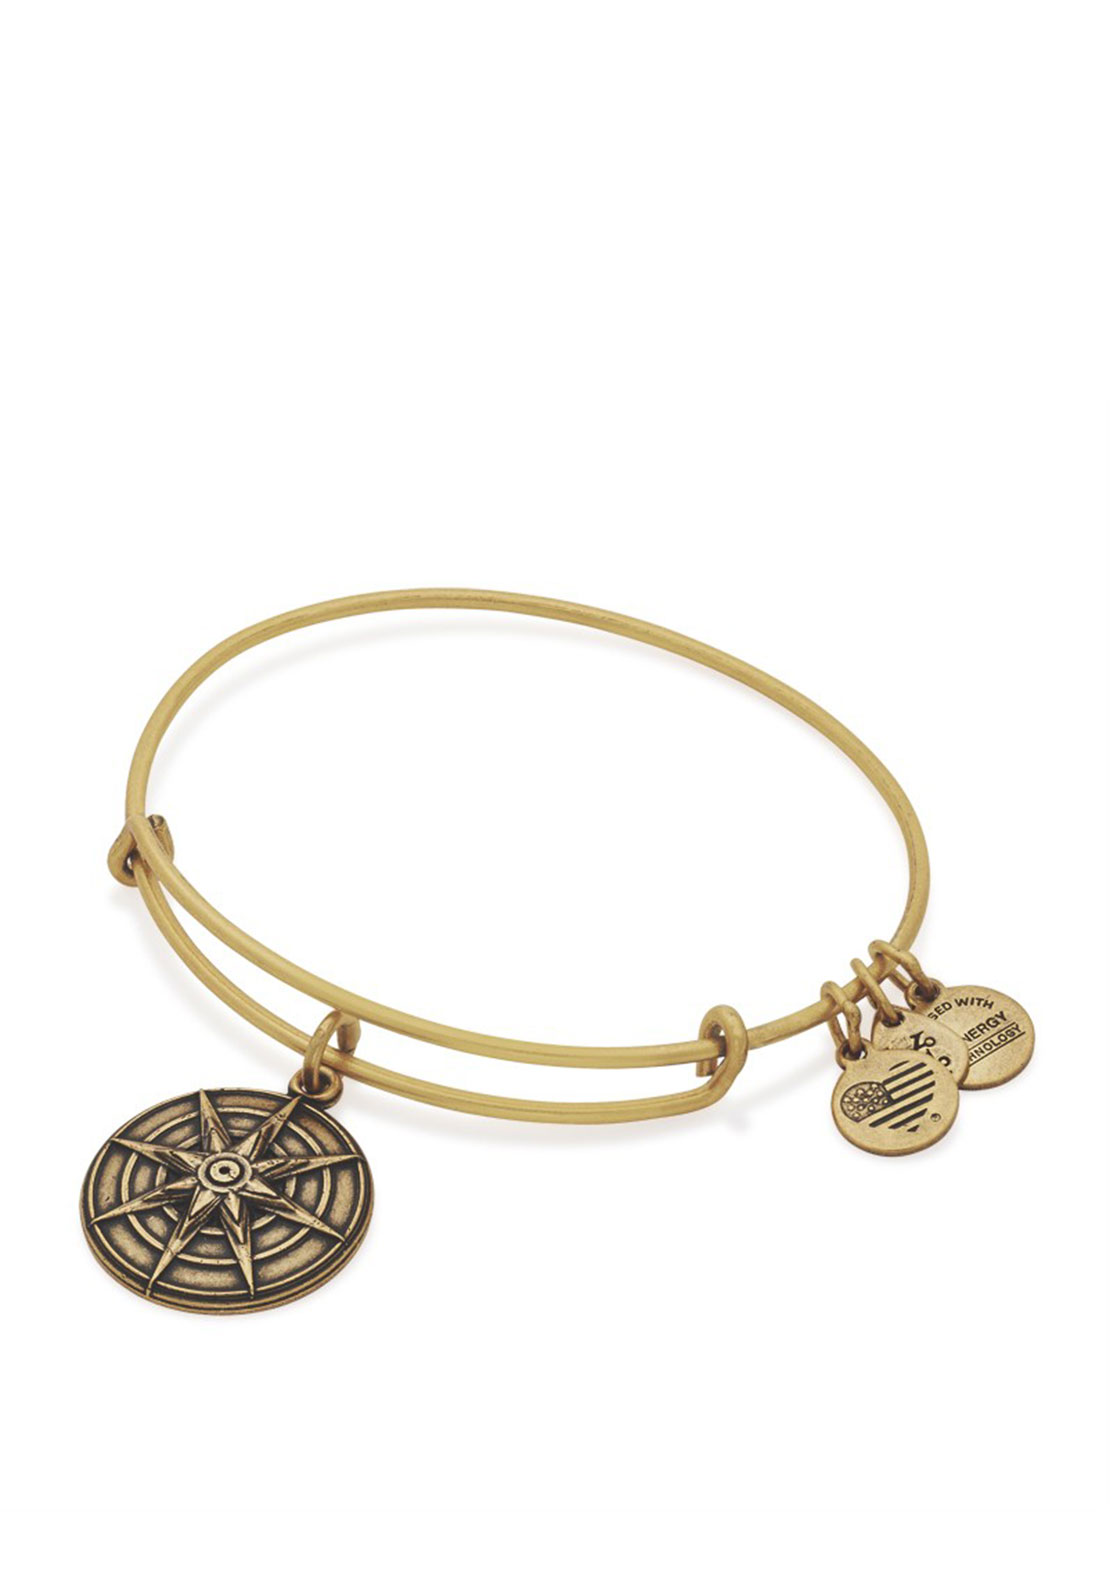 Alex and Ani Star of Venus III Bracelet, Gold